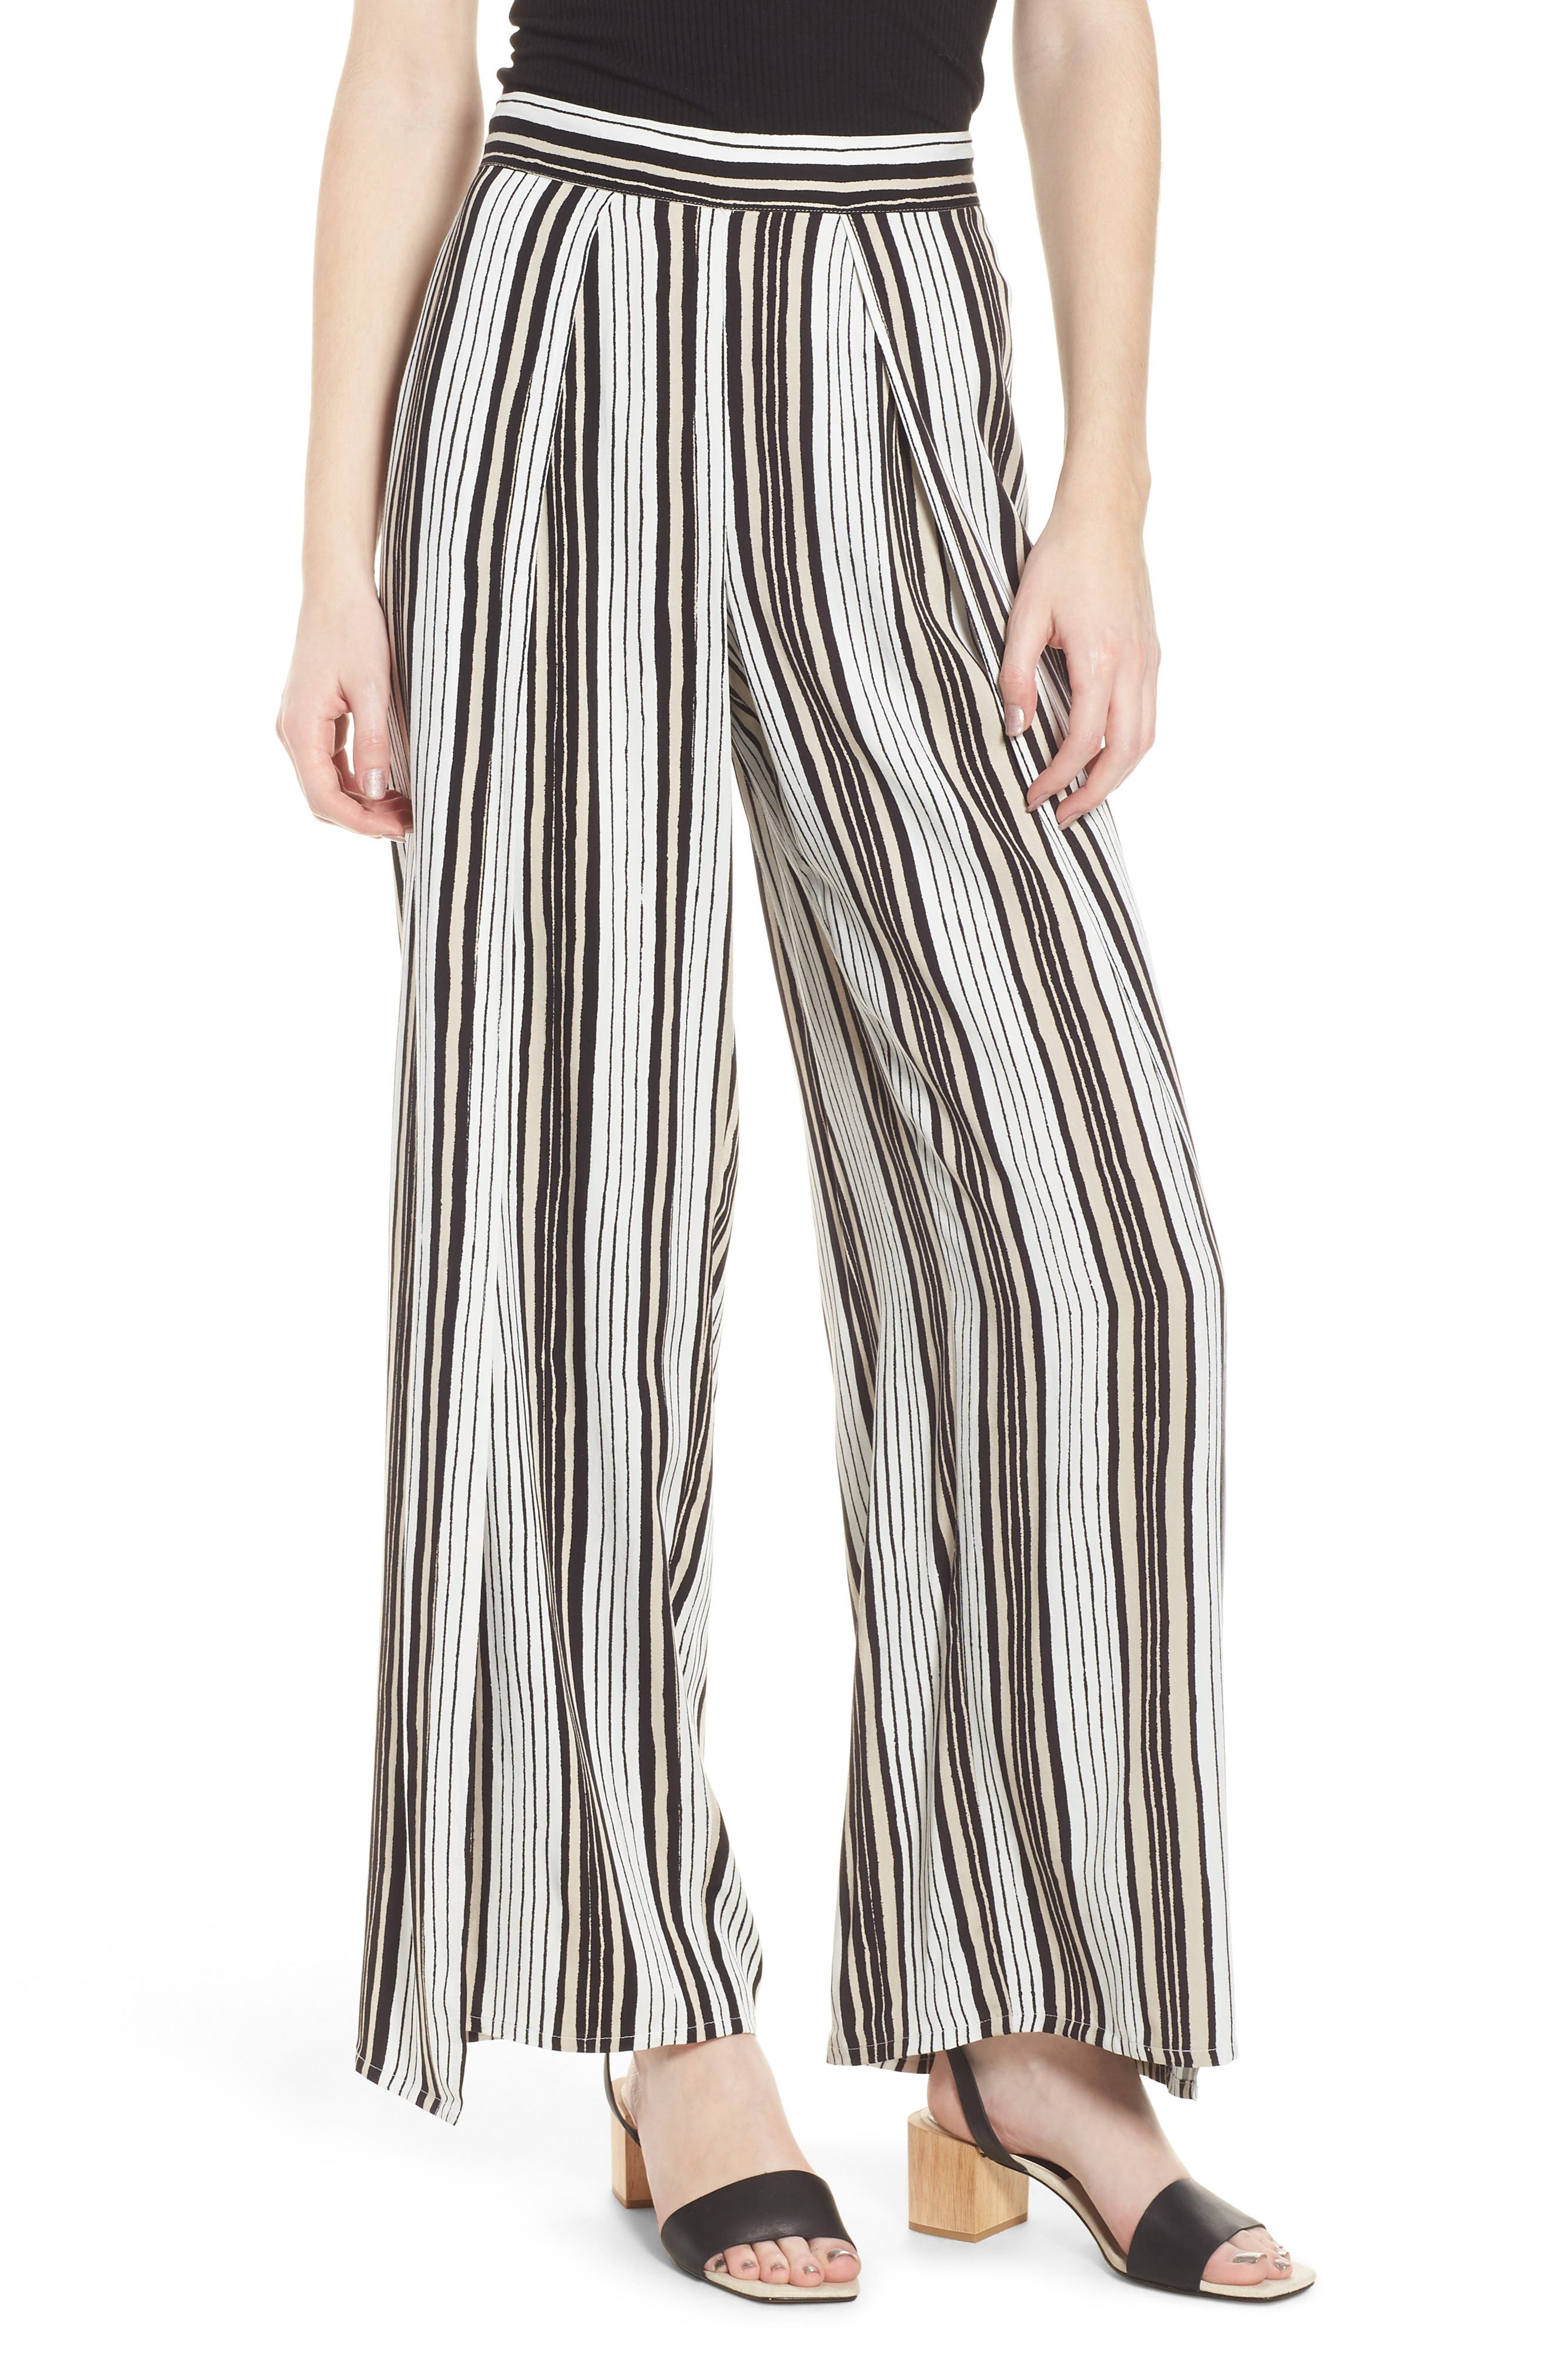 Avah Stripe Pants,                         Main,                         color, Ivory